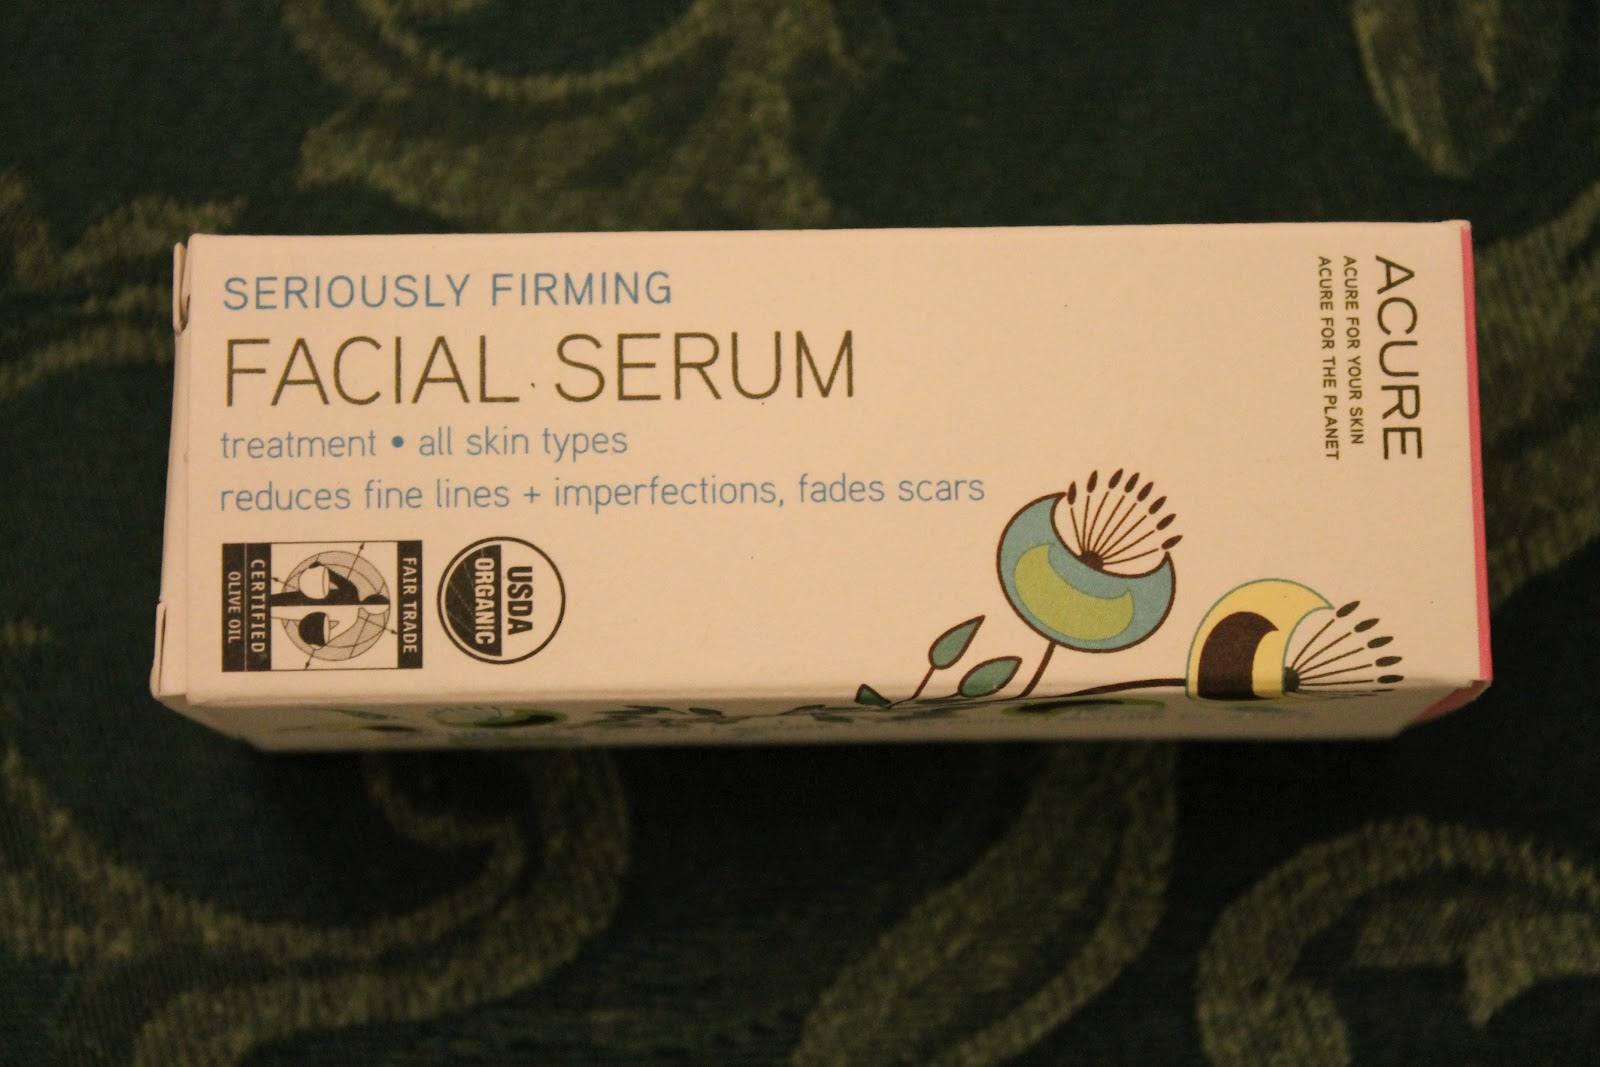 Seriously Firming Facial Serum by acure organics #11